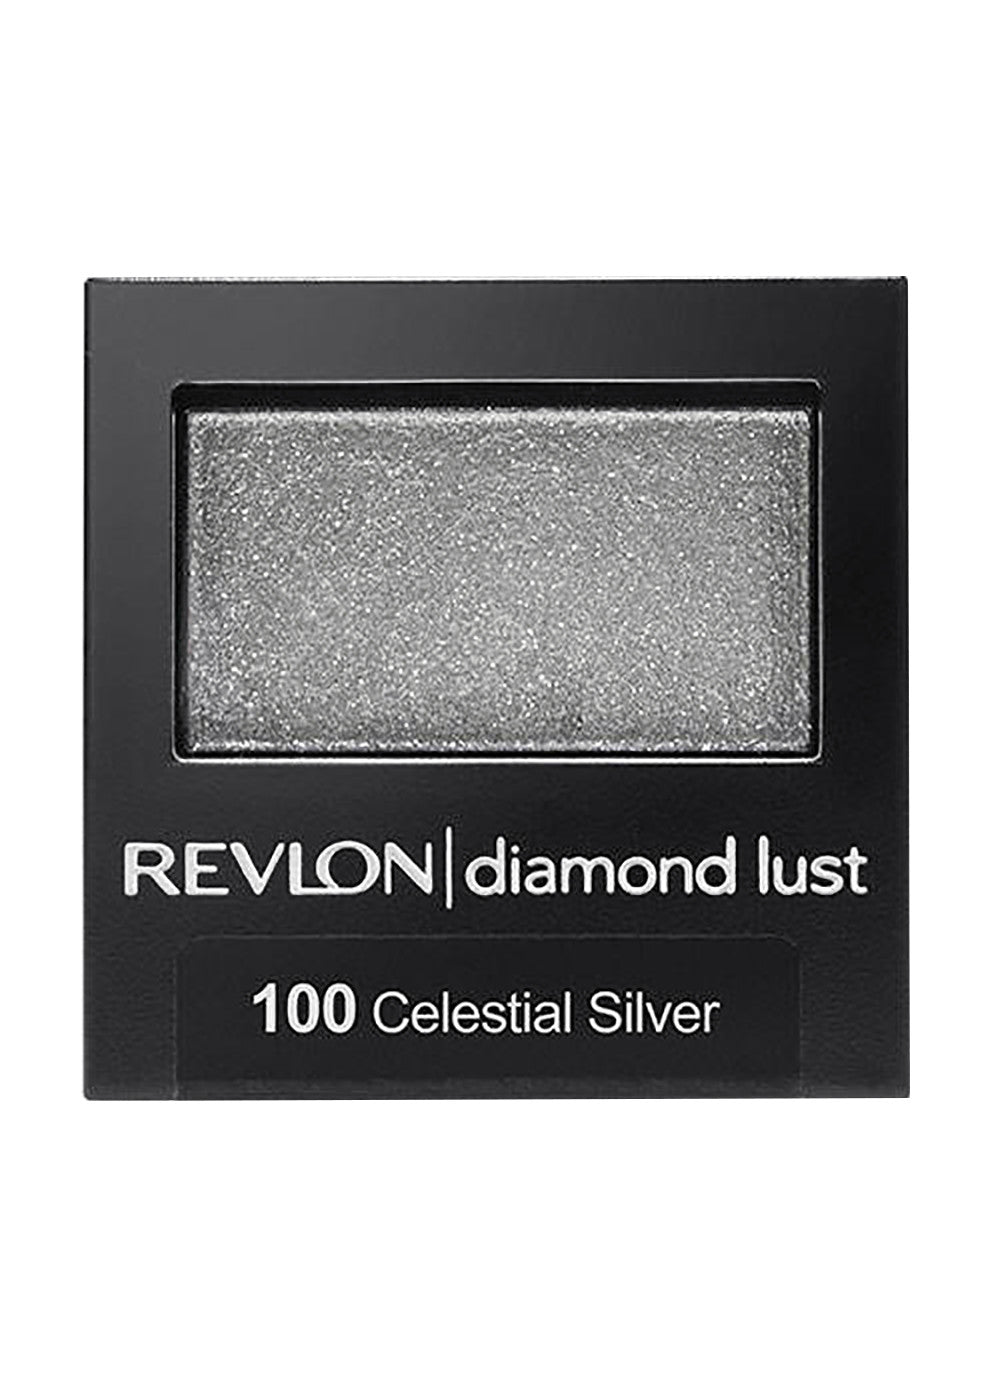 Revlon Luxurious Color Diamond Lust Eyeshadow #100 celestial silver